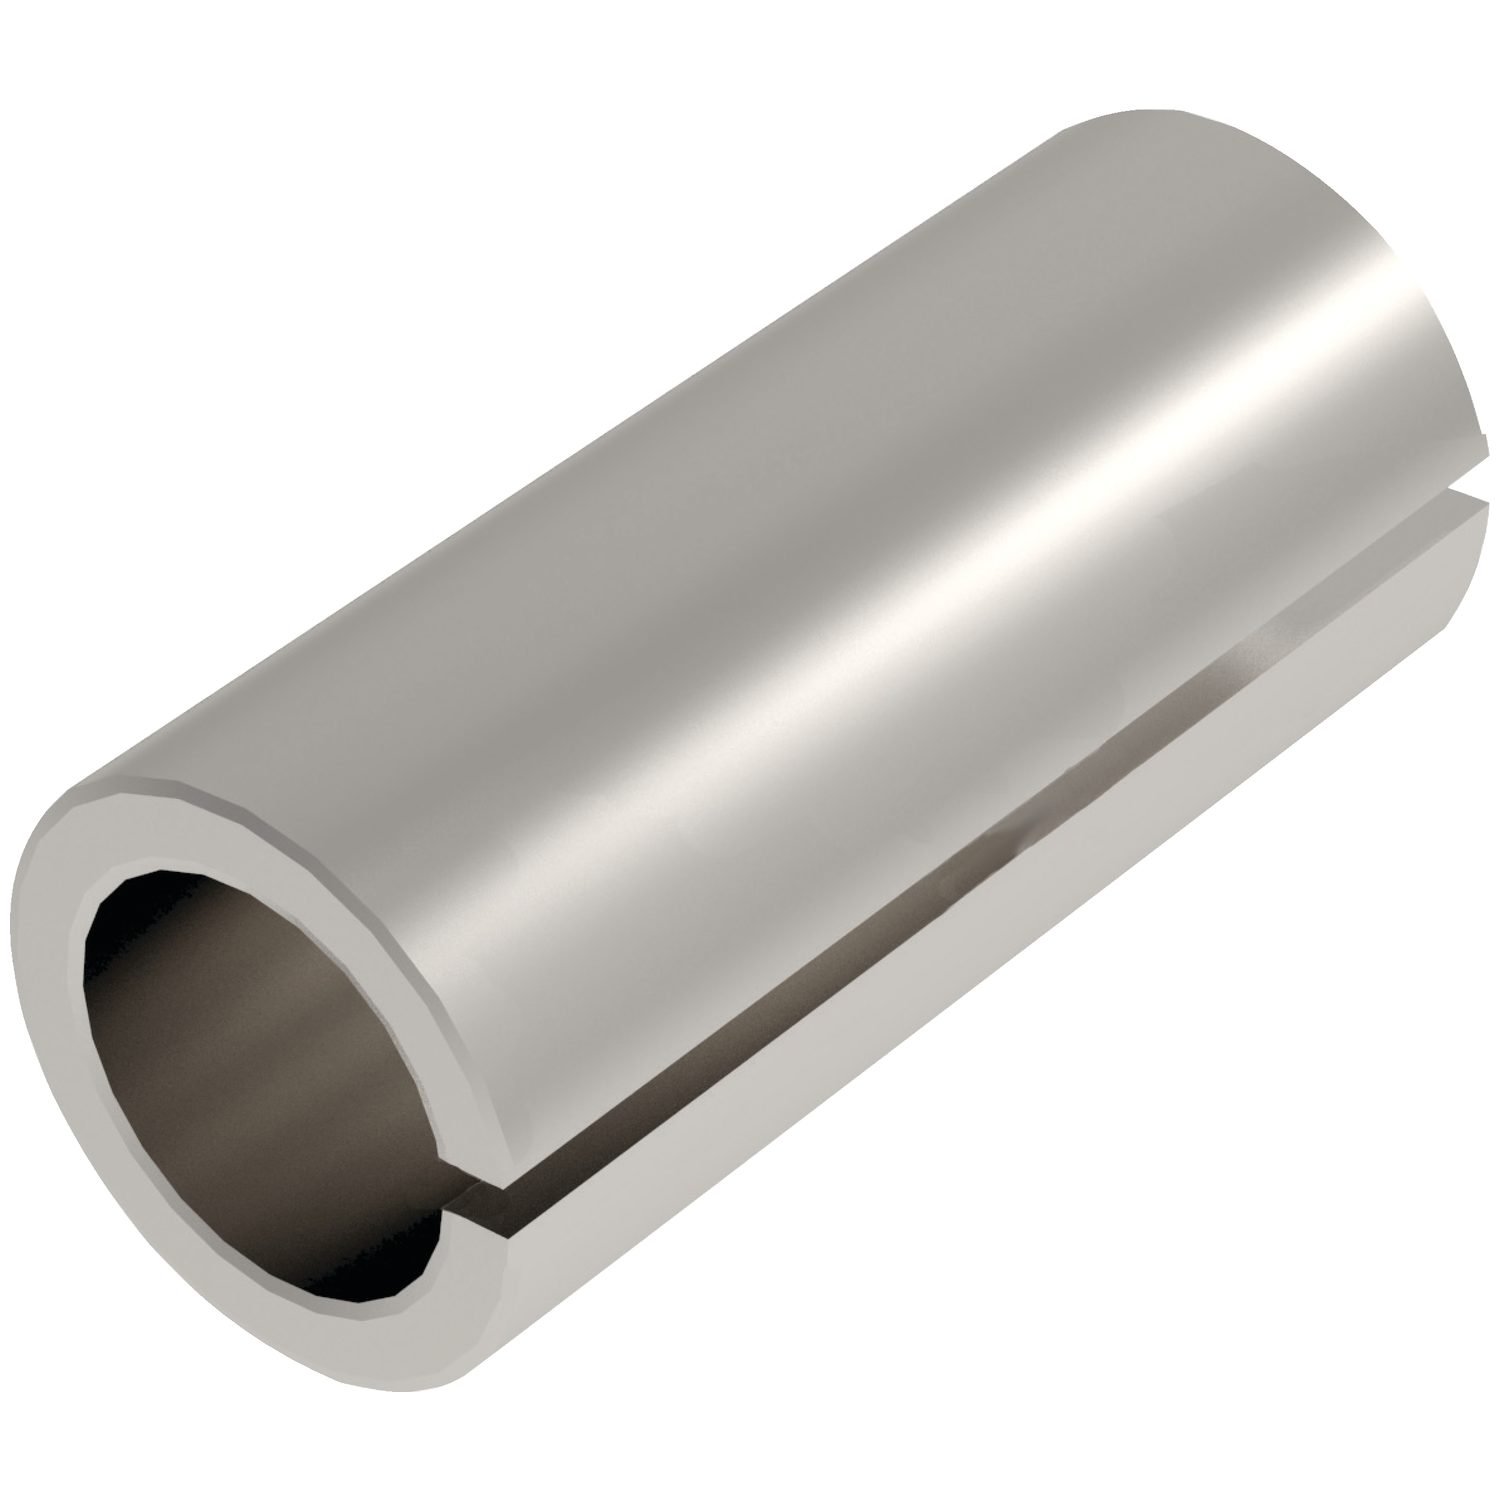 P1335 - Clearance Spacers - Steel